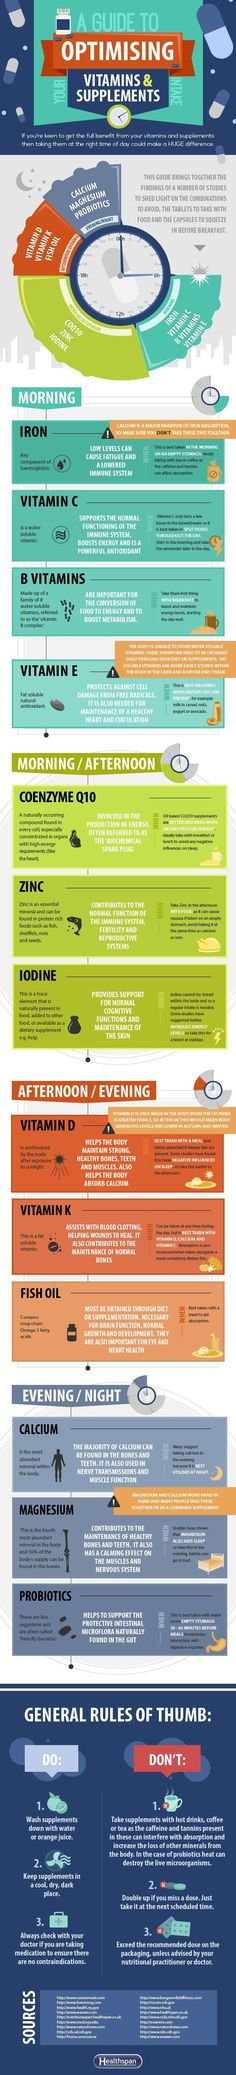 Find out exactly when to take vitamins and how to time your supplements during the day.